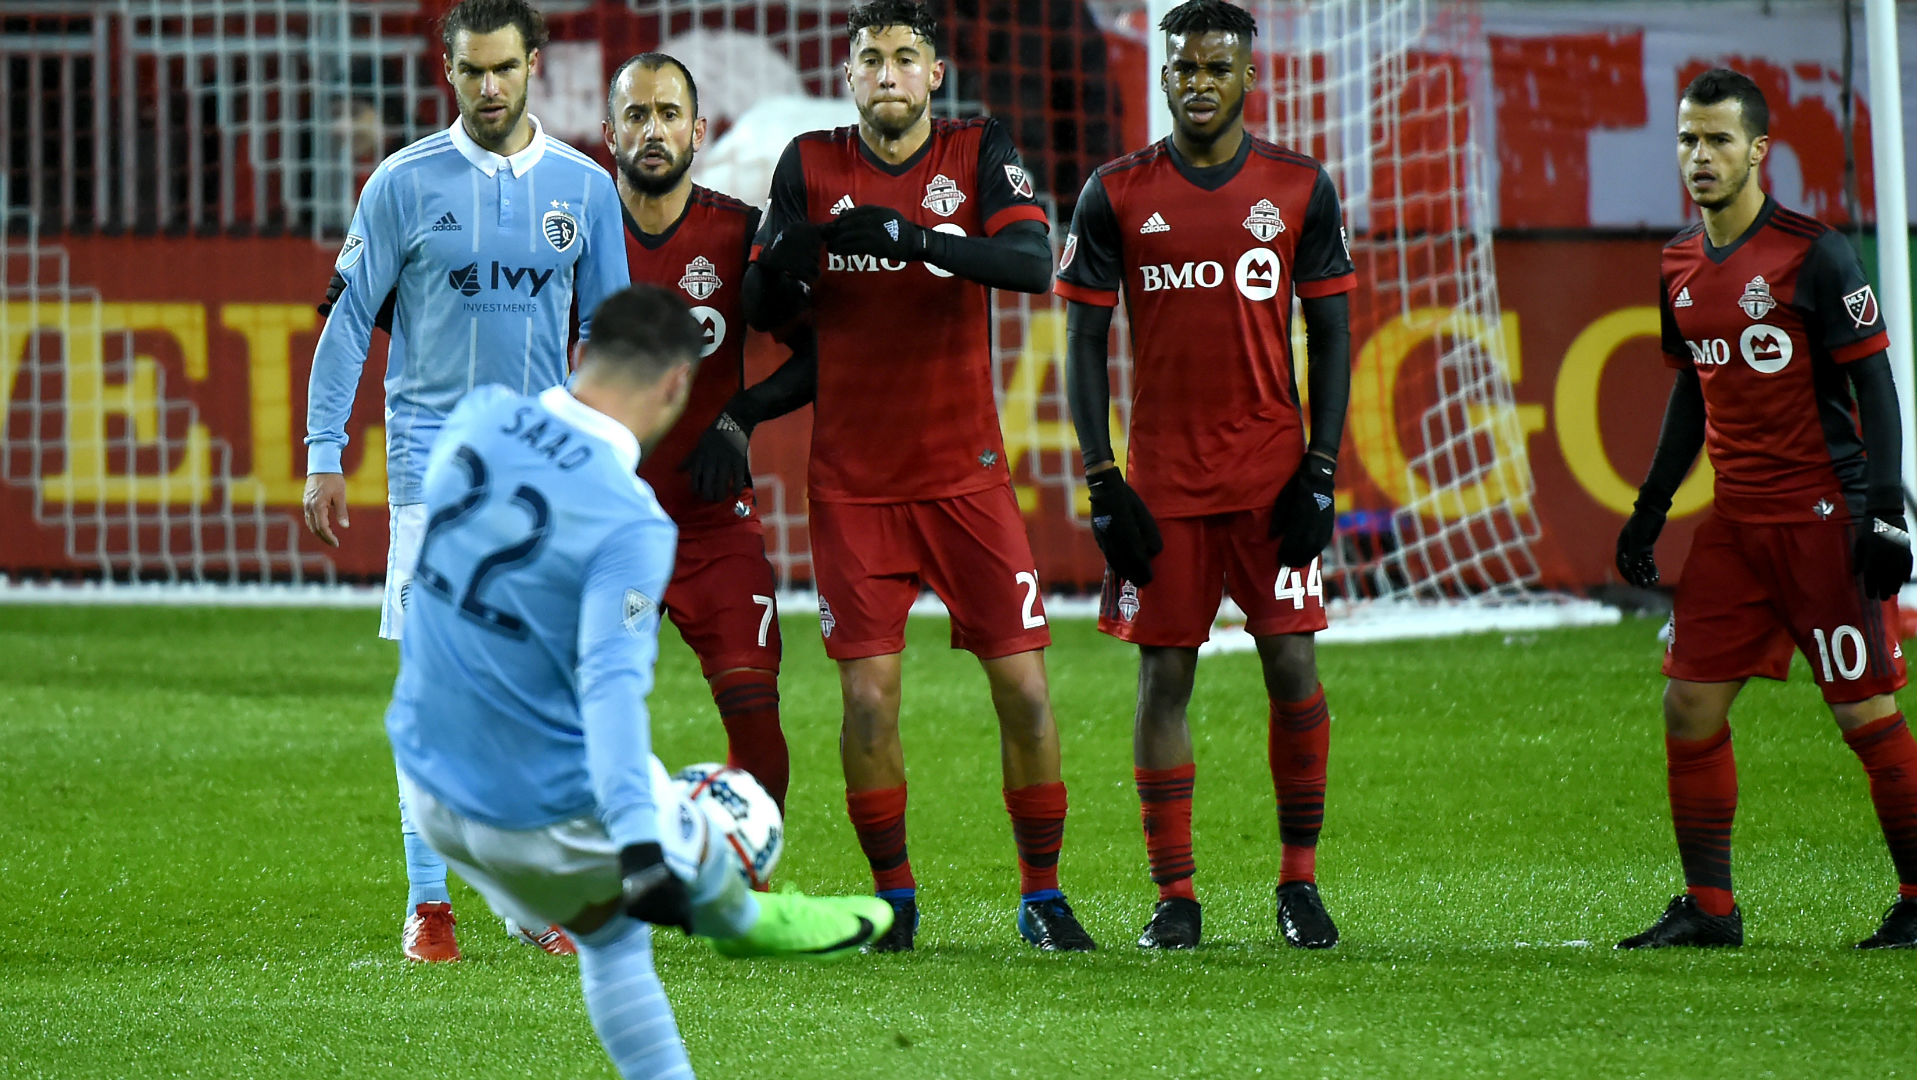 Toronto FC vs. Sporting Kansas City